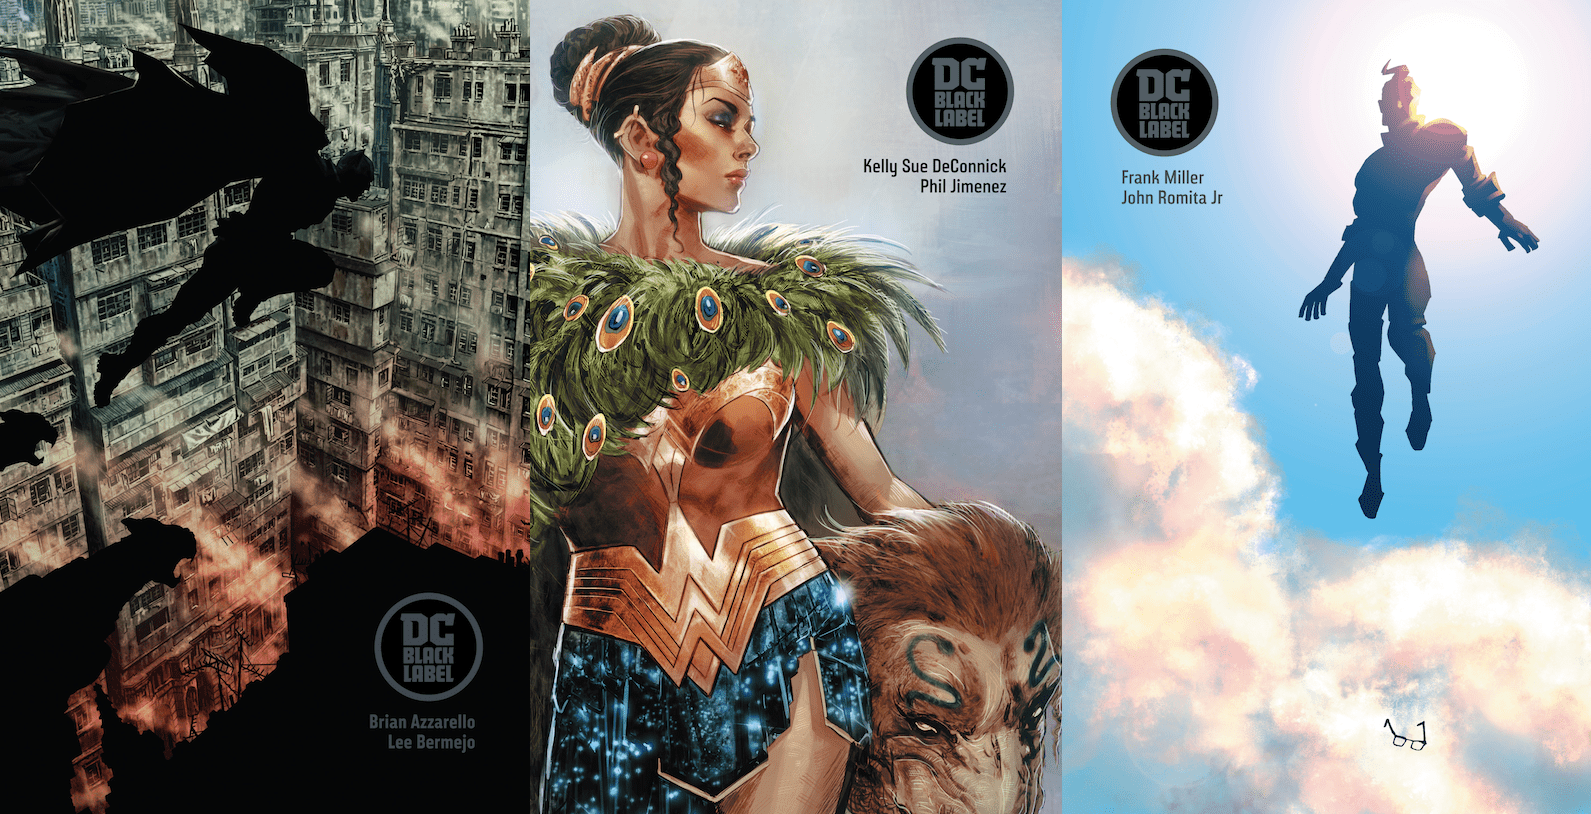 Black Label, le nouveau label de DC Comics